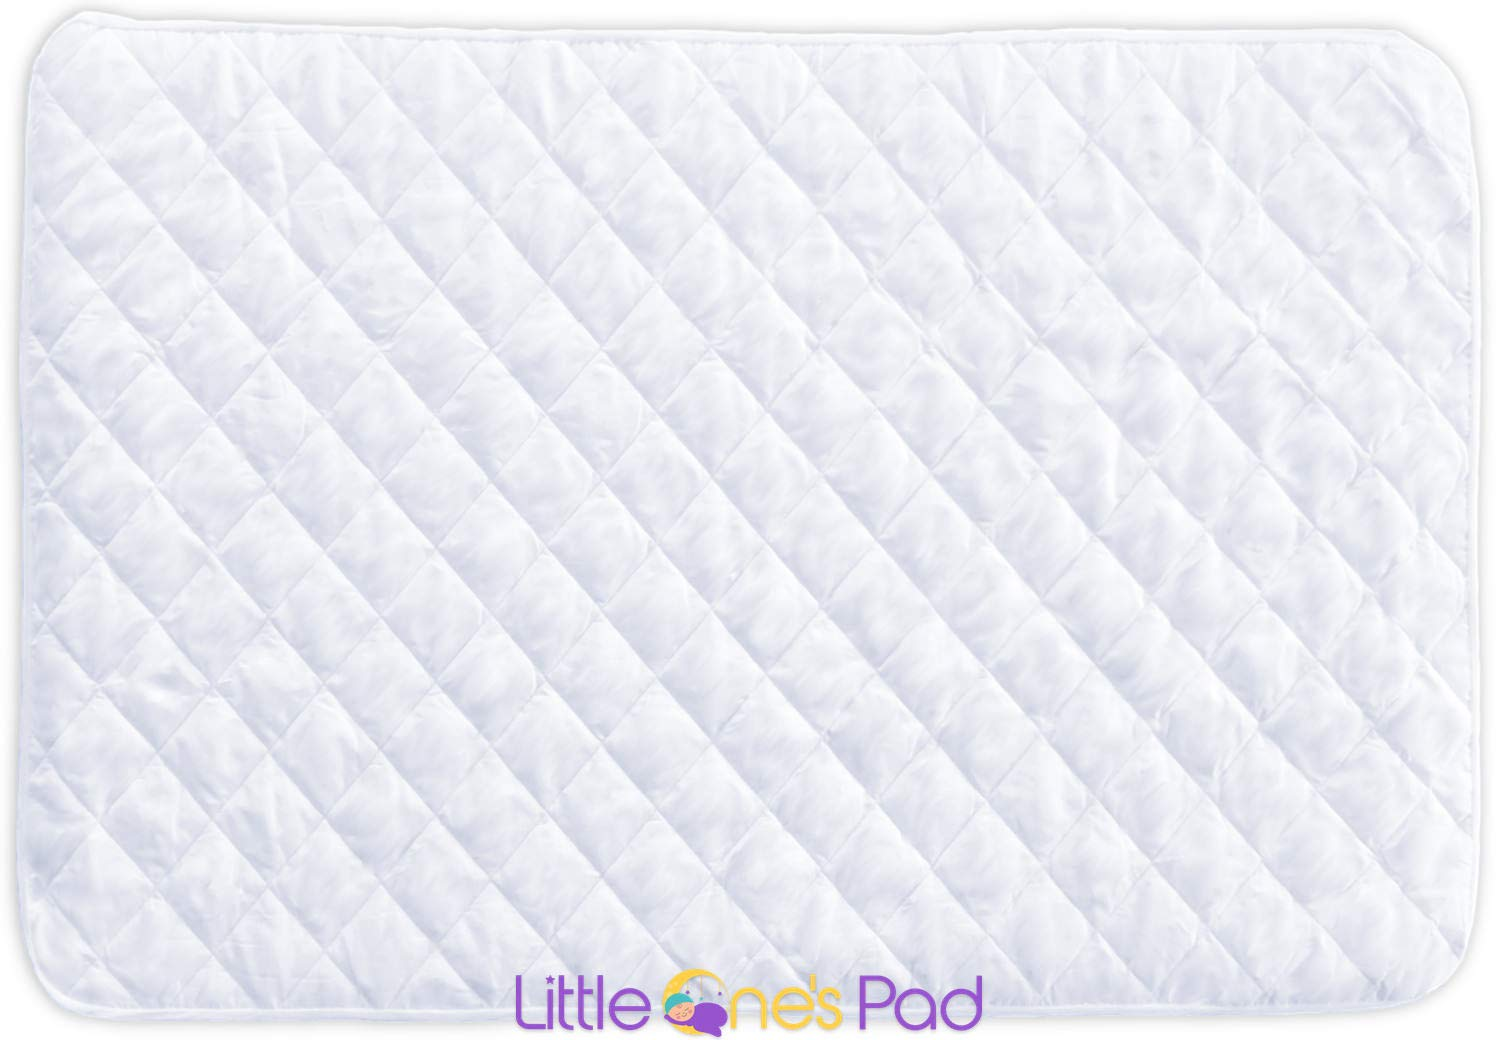 Little One's Pad Pack N Play Crib Mattress Cover - 27'' X 39'' - Fits Most Baby Portable Cribs, Play Yards and Foldable Mattresses - Waterproof, Dryer Safe - Comfy and Soft Fitted Crib Protector by Little One's Pad